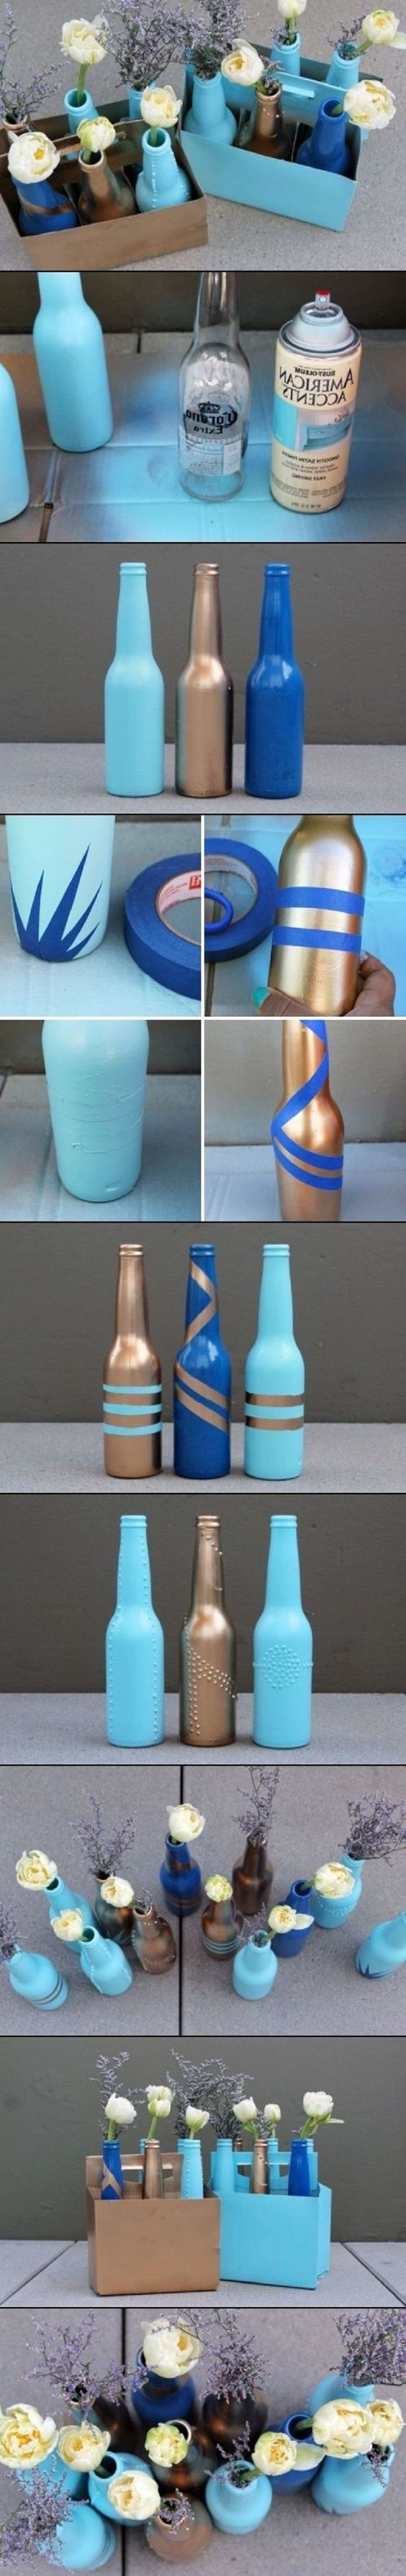 Empty glass bottles glass bottles and vases on pinterest for How to decorate empty glass jars